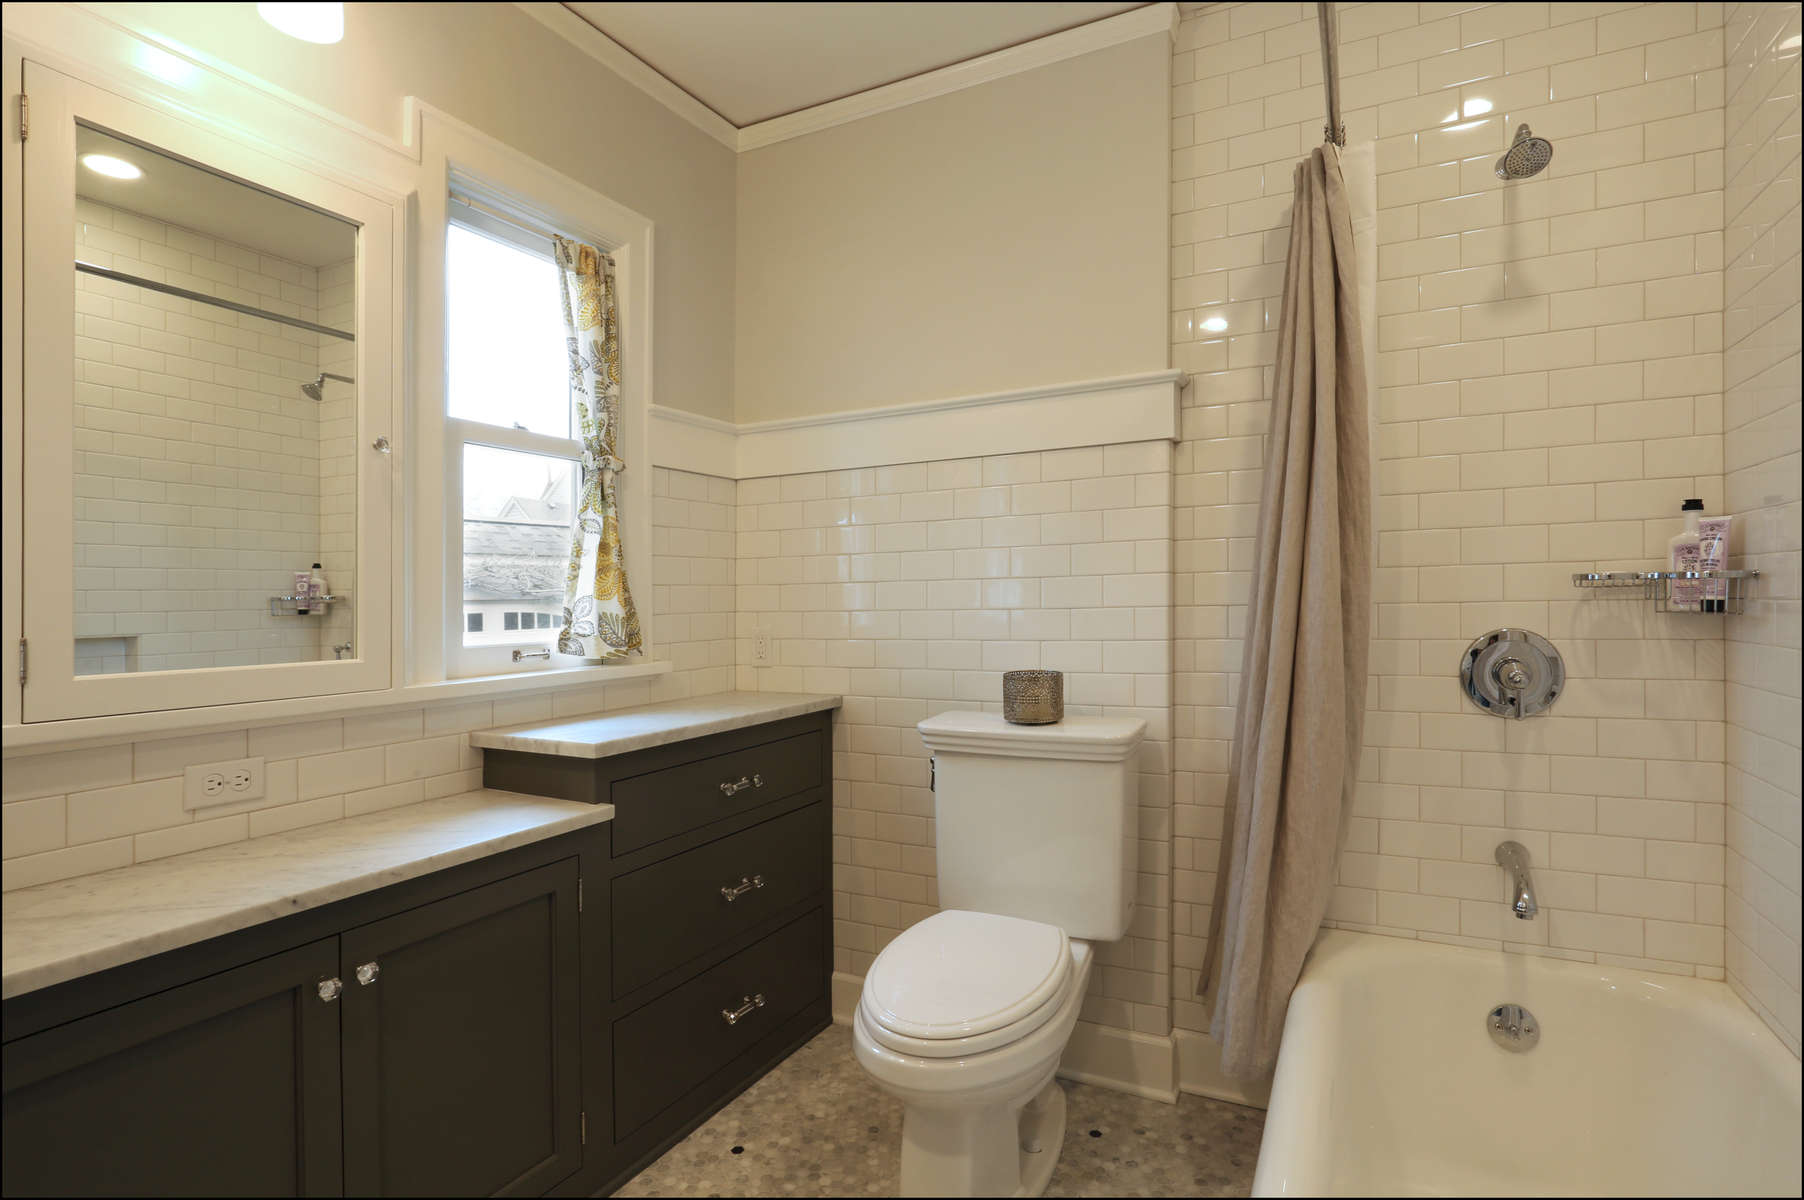 andreahoward-w-1926-bathroom-a-_2_